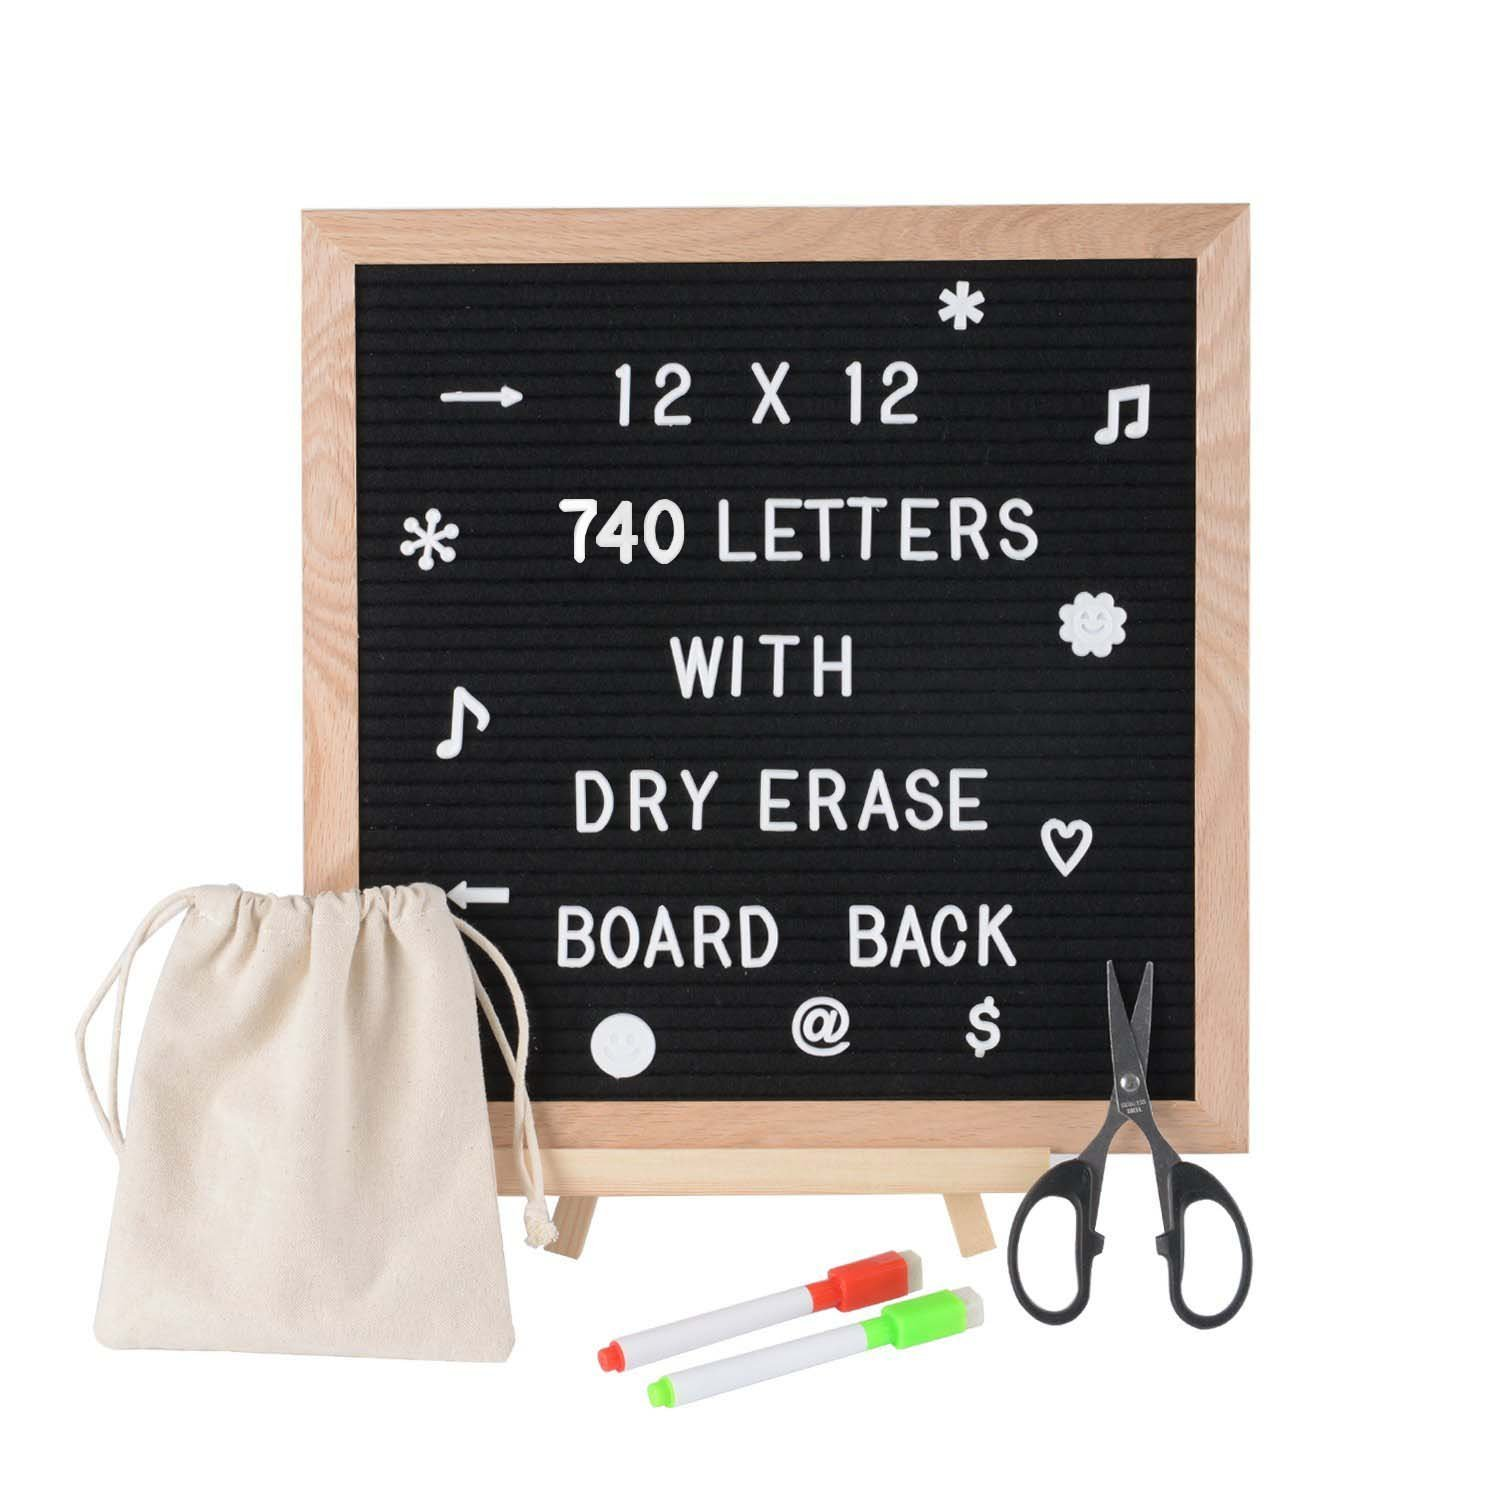 SPACECARE Black Felt Letter Board with Dry Erase Board Back, 720PCS Letters, Numbers & Symbols, 12x12 inches Wall Mount Changeable Message Board Sign, Word Board, Letterboard